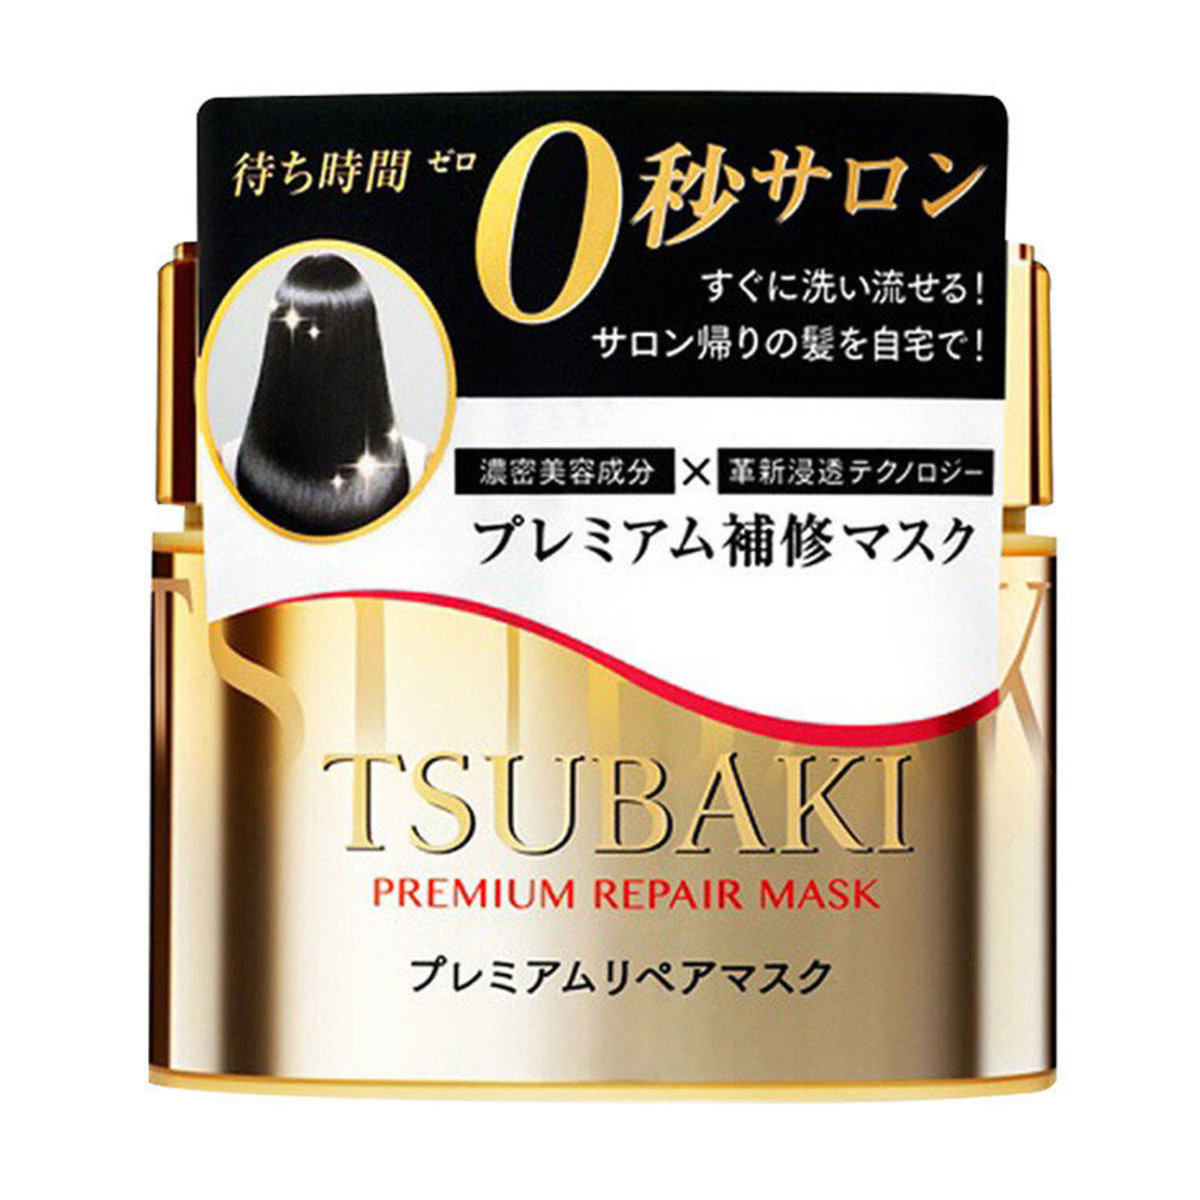 Tsubaki Premium Repair Hair Mask 180g(parallel import)